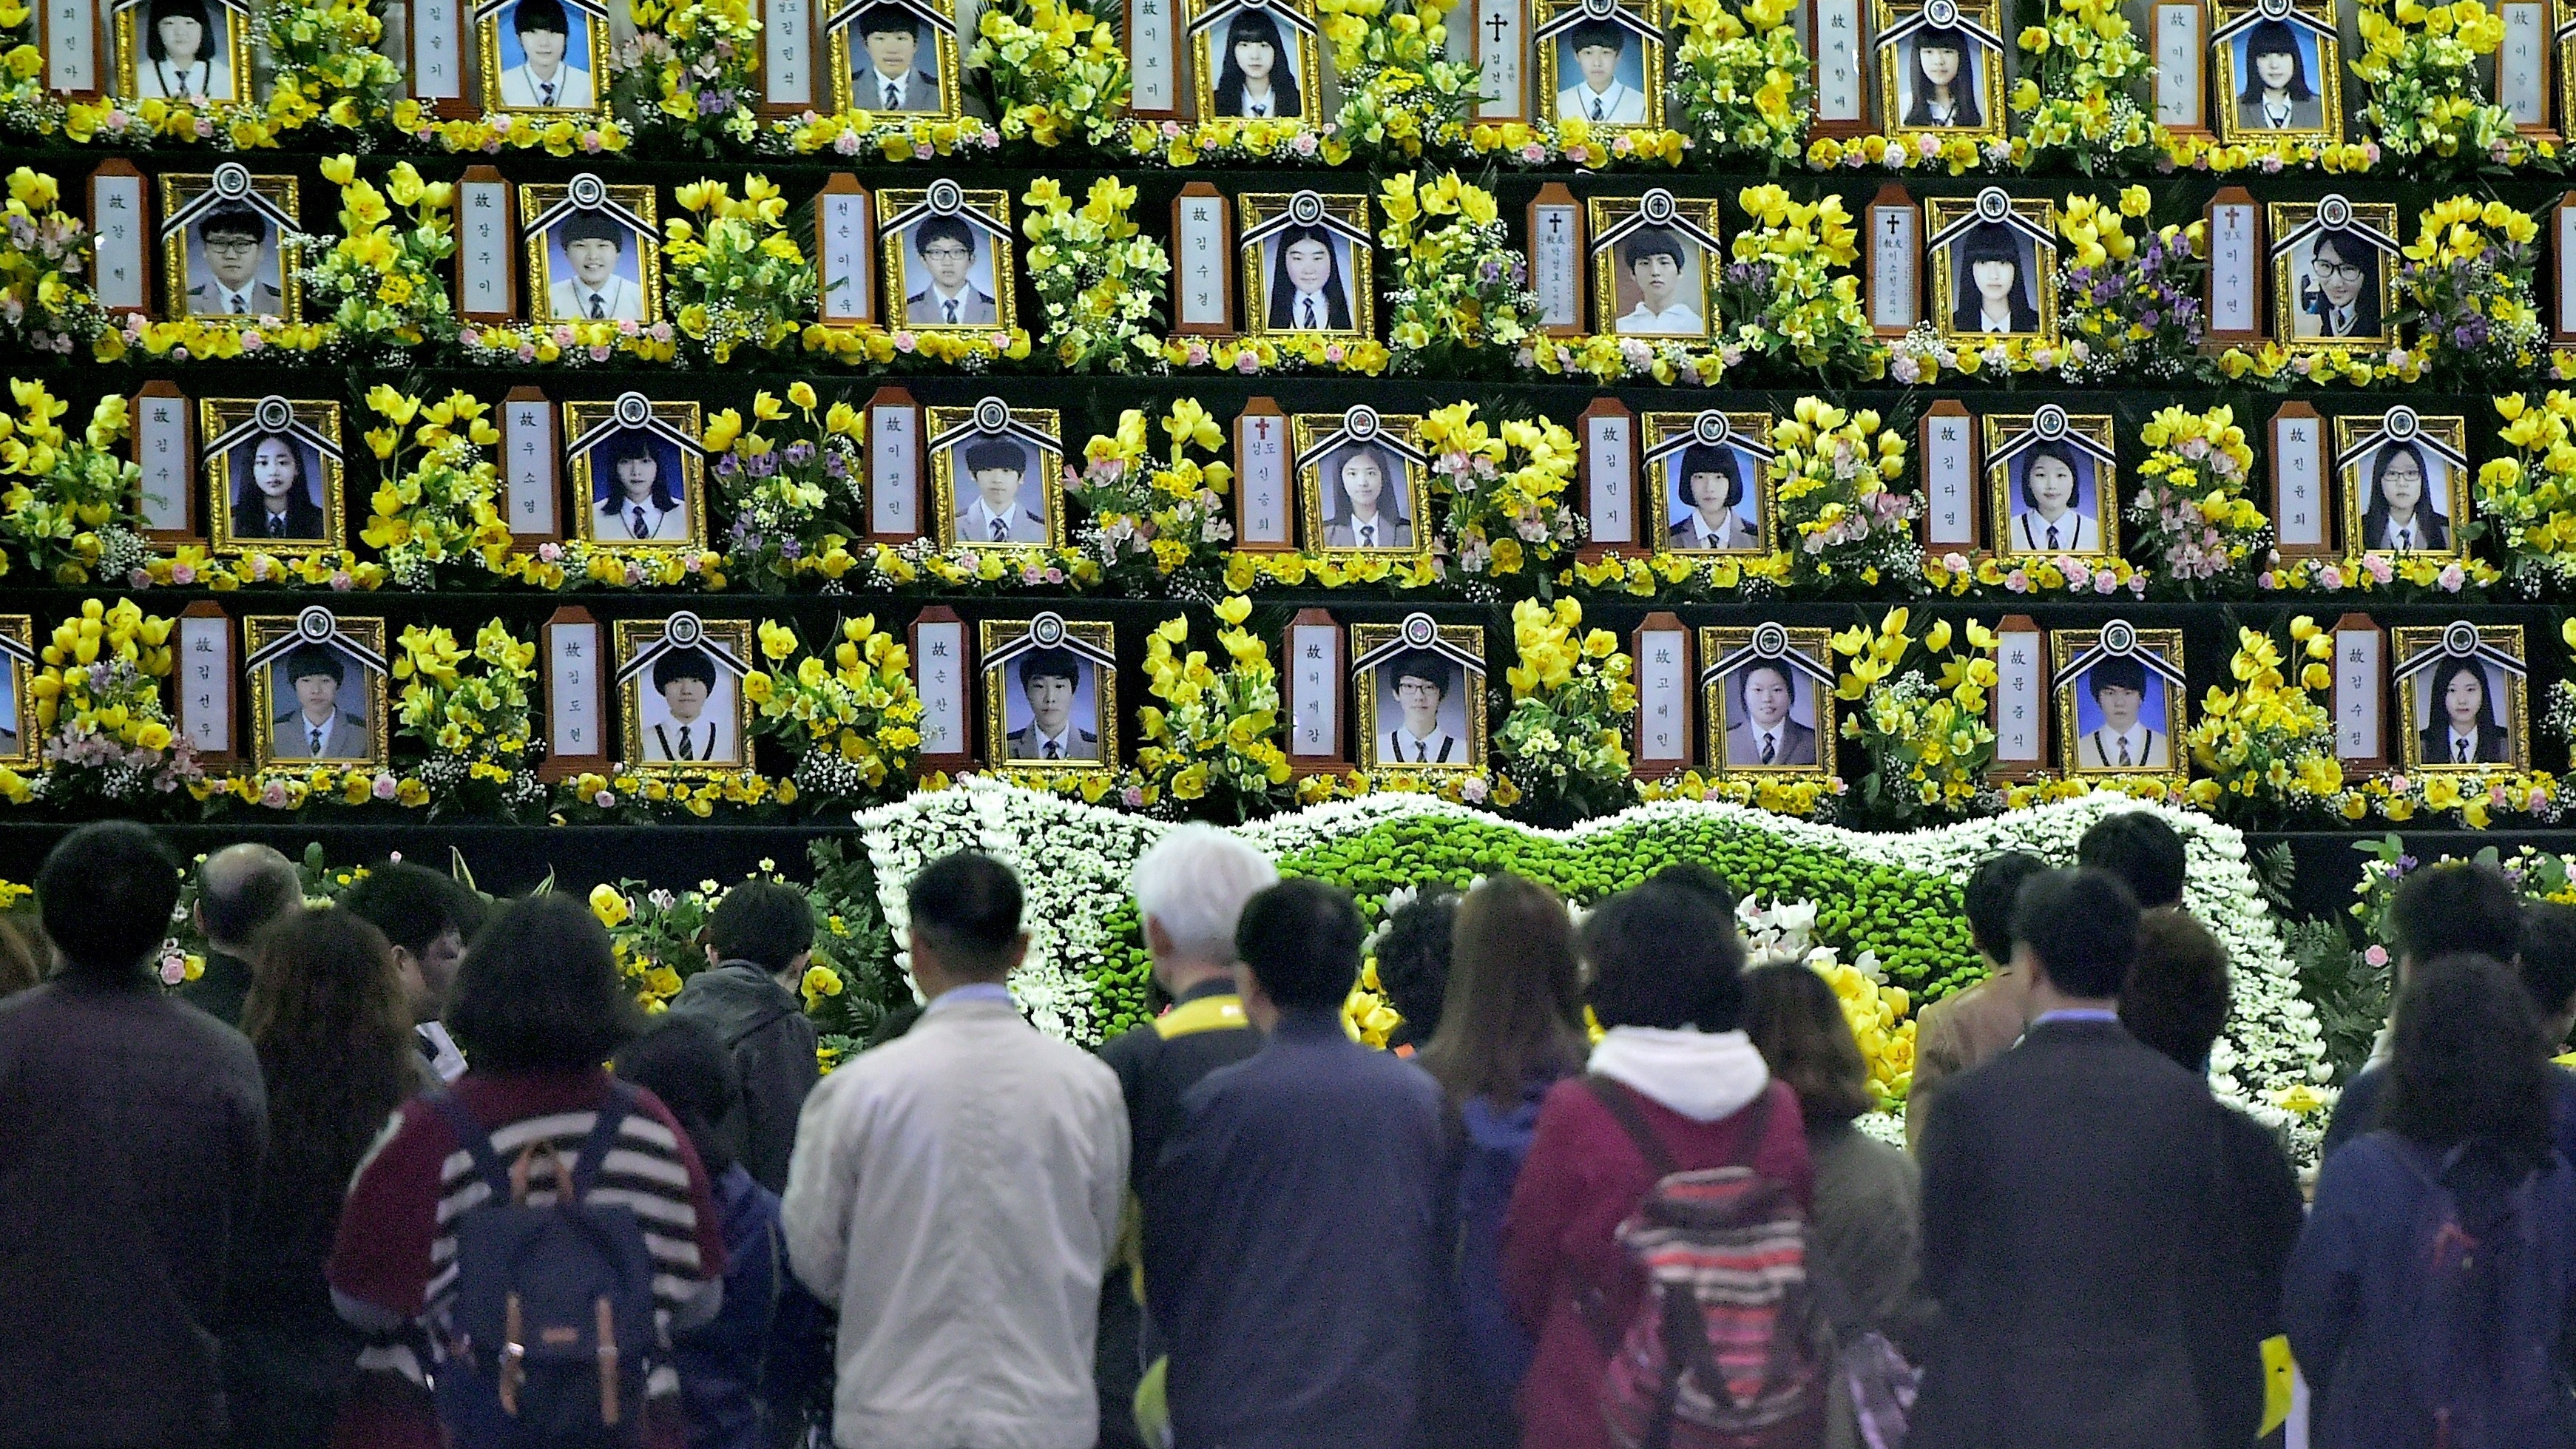 People pay tribute at a group memorial altar for victims of the sunken South Korean ferry Sewol at a remembrance hall in Ansan on Thursday. (Photo by Jung Yeon-Je/AFP/Getty Images)